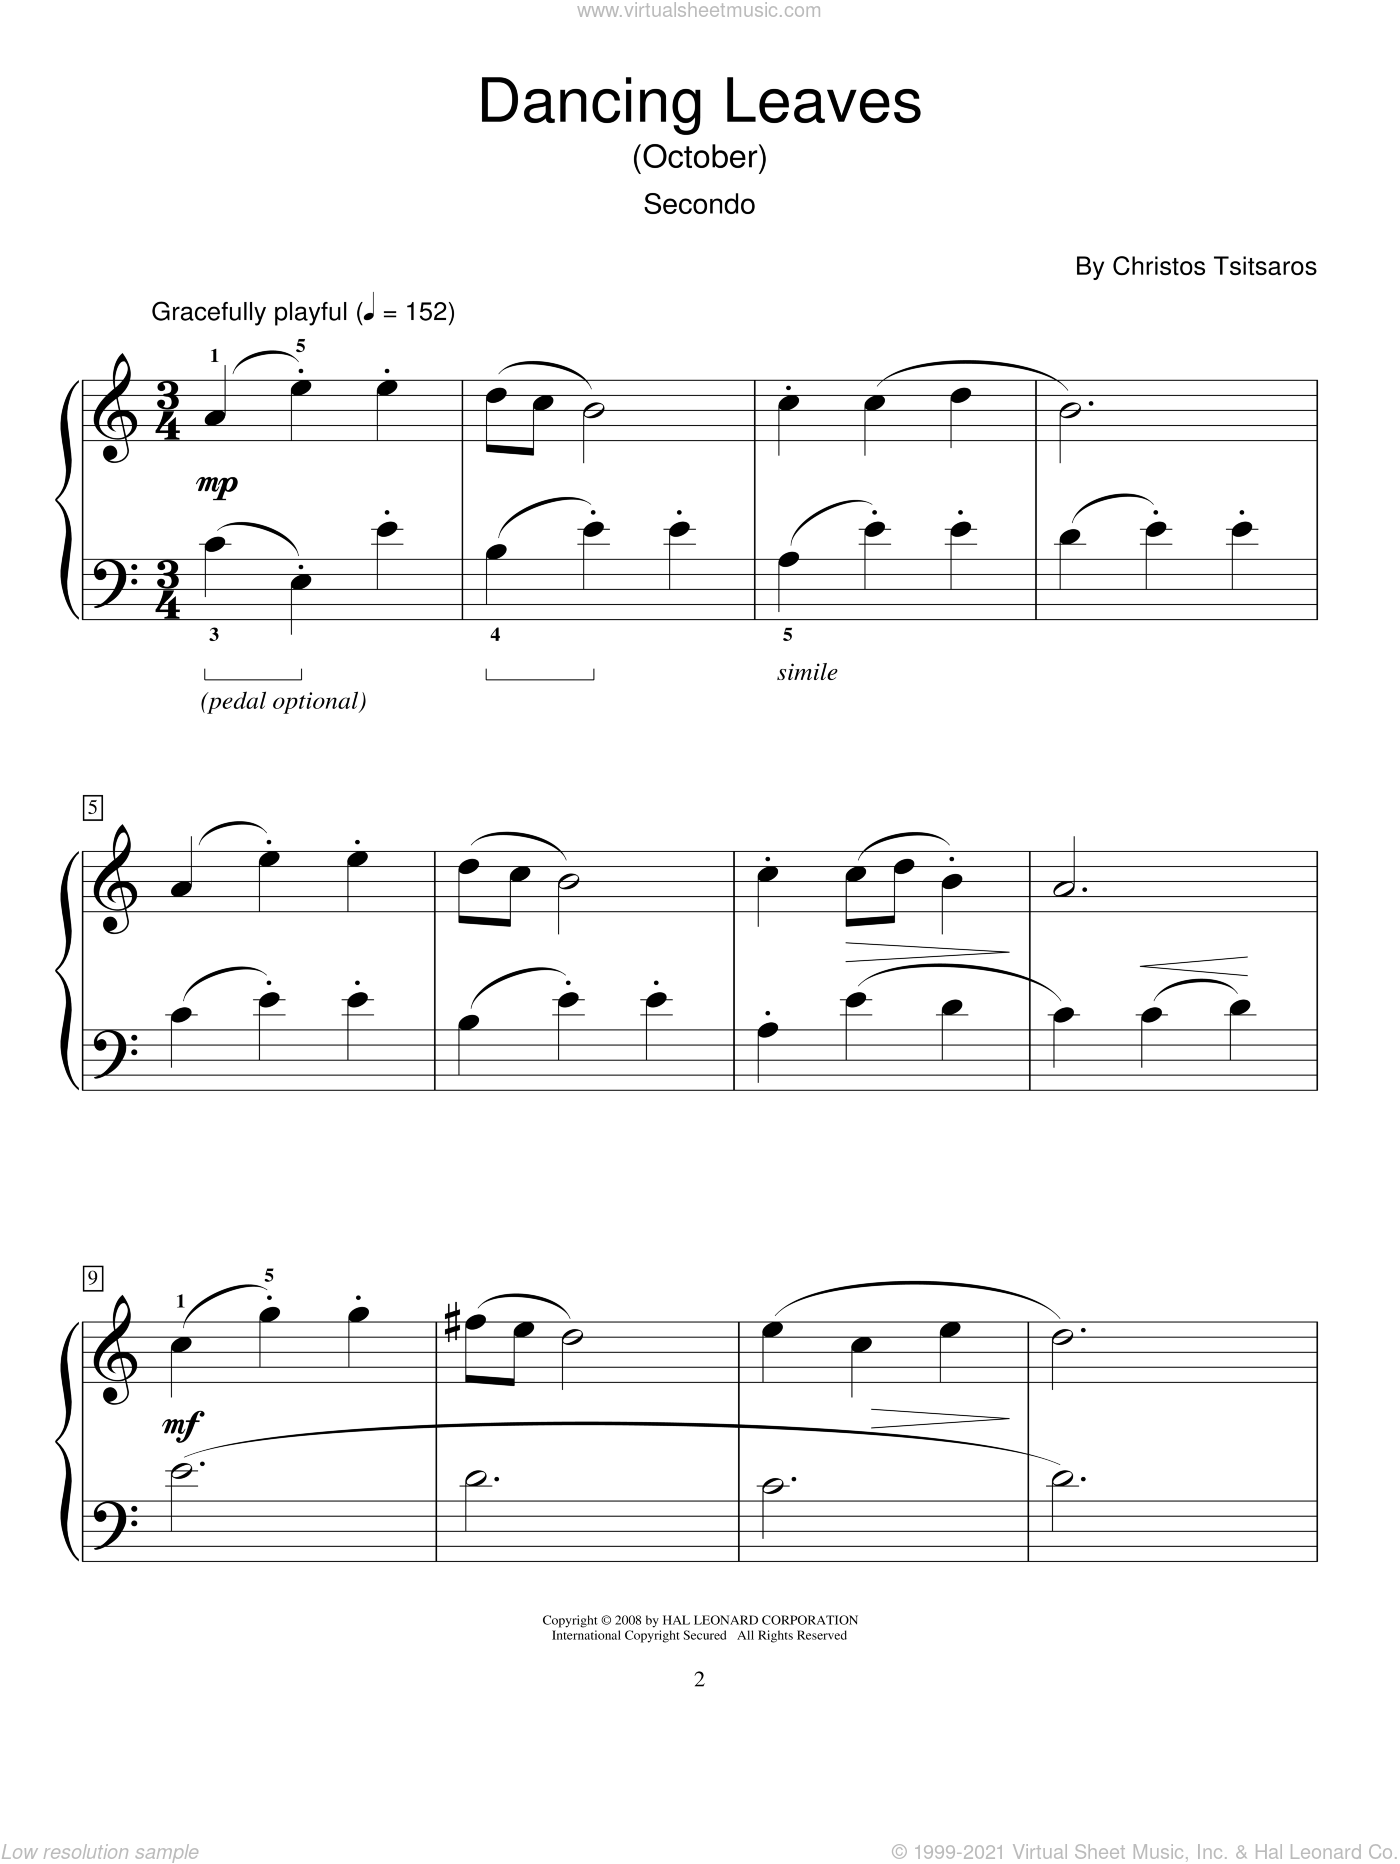 Dancing Leaves (October) sheet music for piano four hands (duets) by Christos Tsitsaros and Miscellaneous. Score Image Preview.